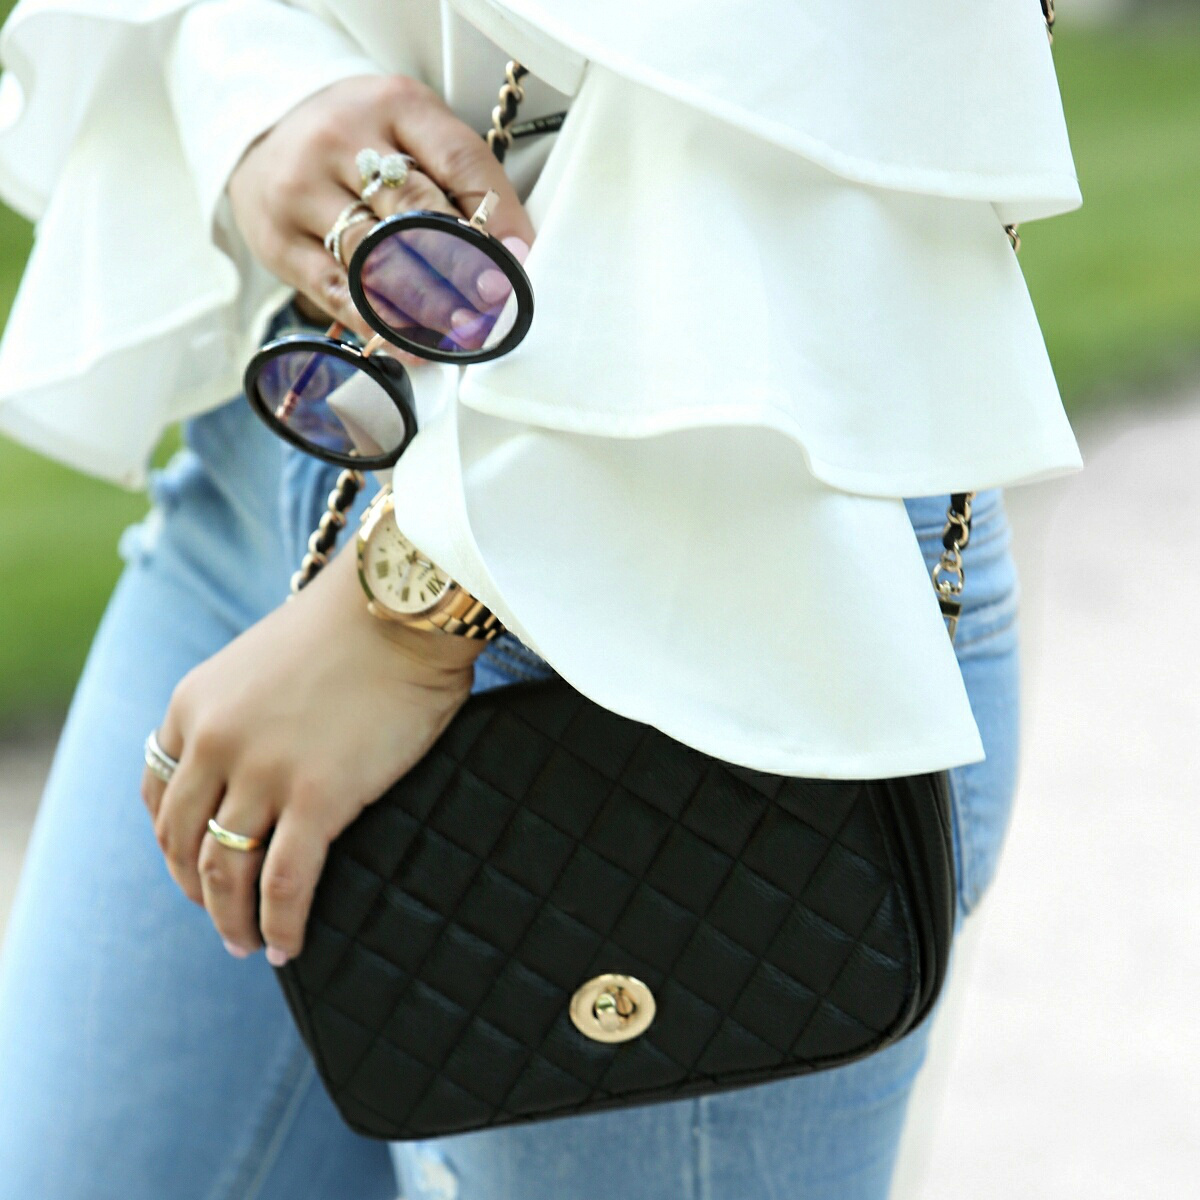 chanel-lookalike-prada-pr-50TS-1AB0A7-alike-sonnenbrille-sunglasses-glasses-sunnies-sonnenbrille-fashion-blog